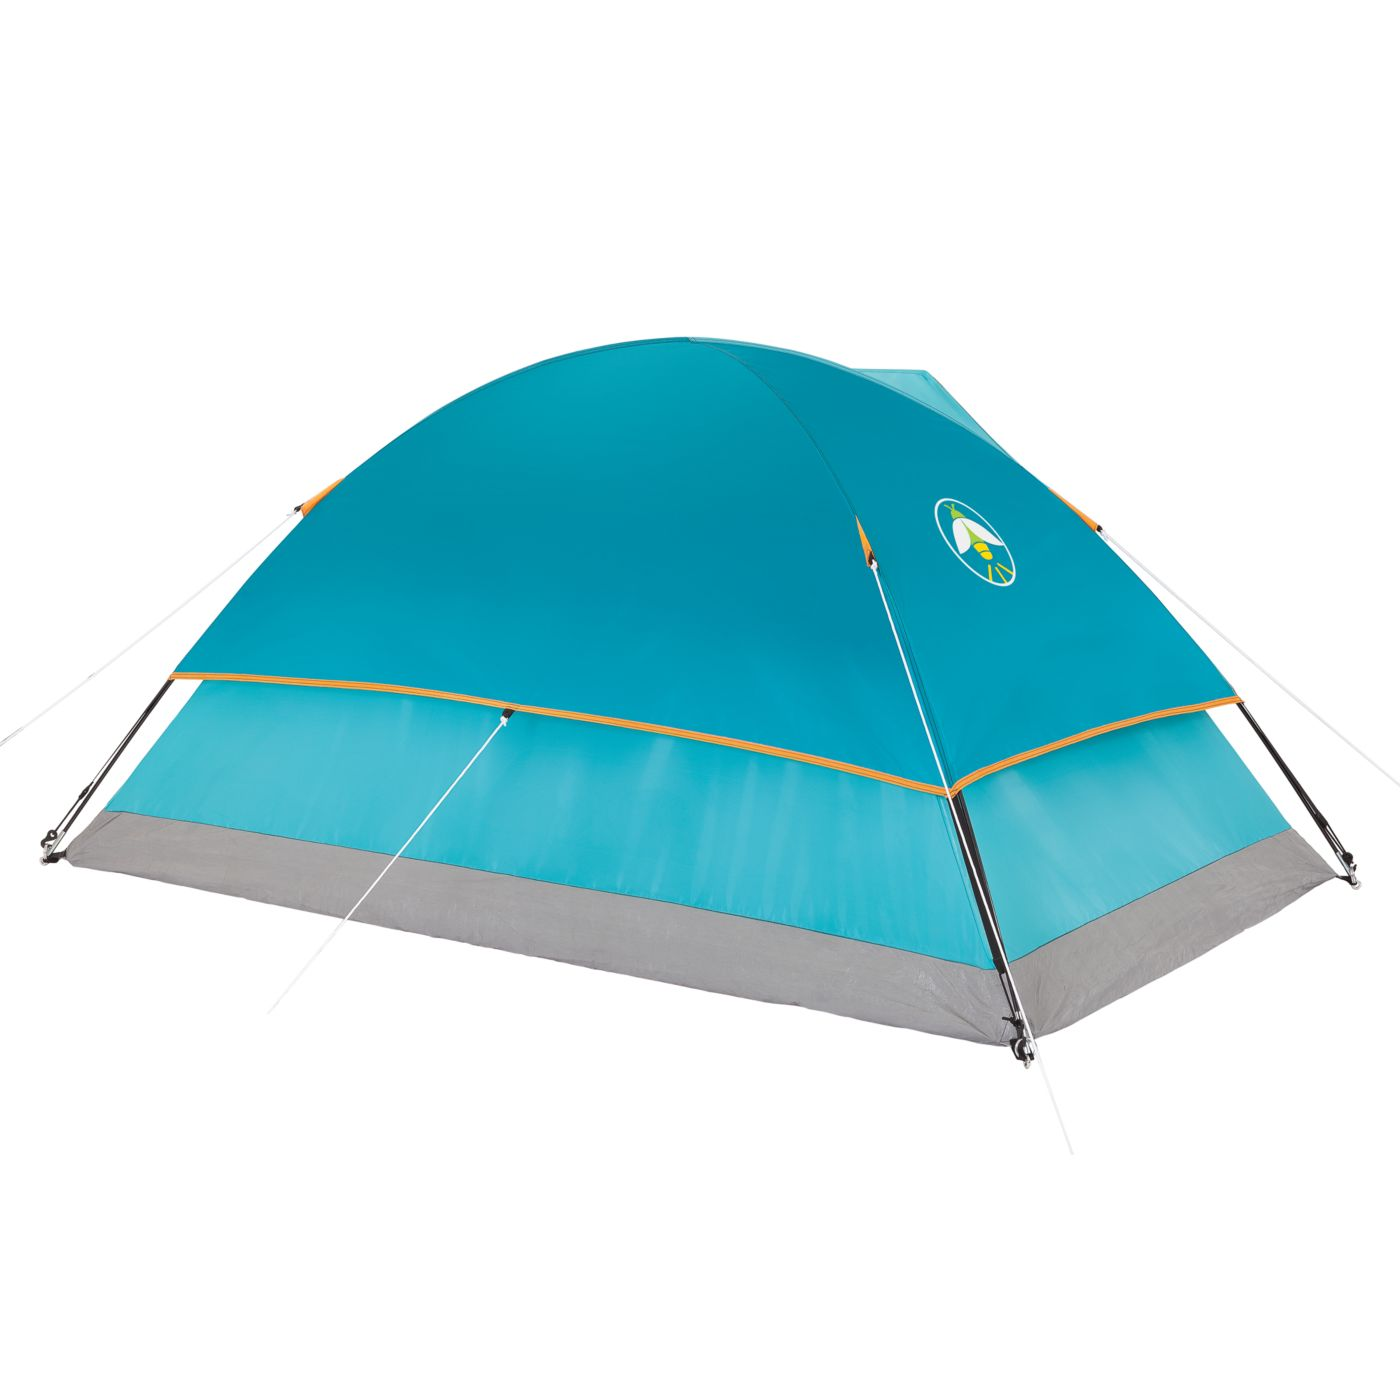 ... Tent · Coleman® Kids Wonder Lake™ 2-Person Dome ...  sc 1 st  Coleman & Coleman® Kids Wonder Lake™ 2-Person Dome Tent - USA